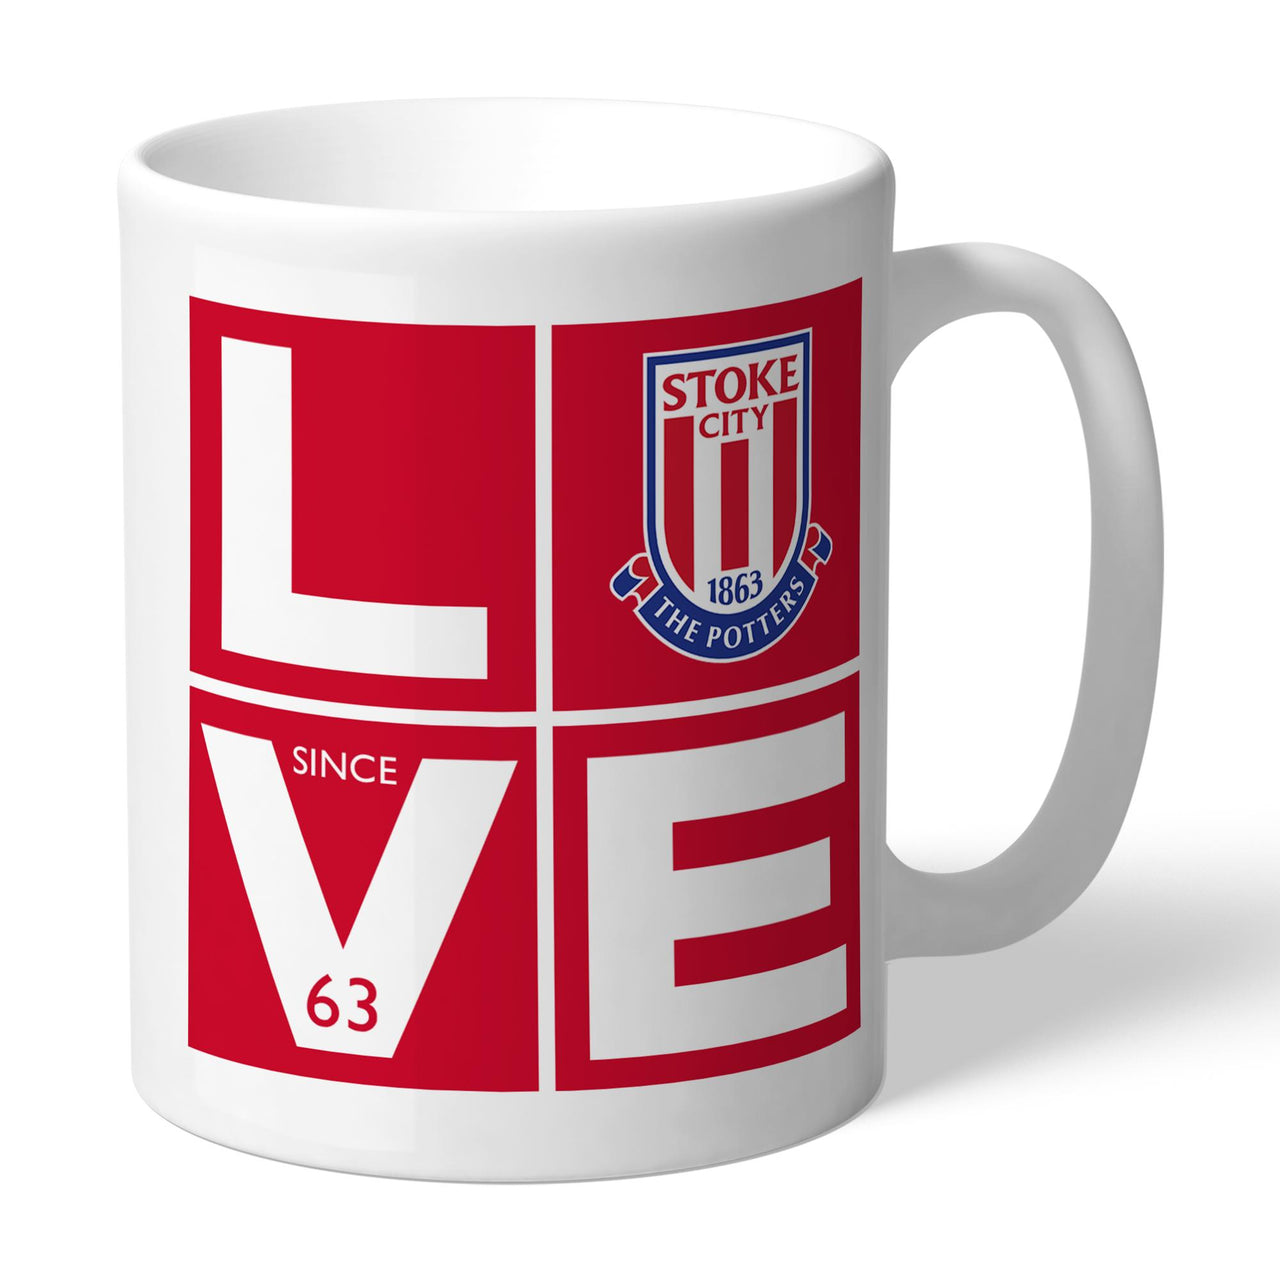 Stoke City FC Love Mugs, Gifts